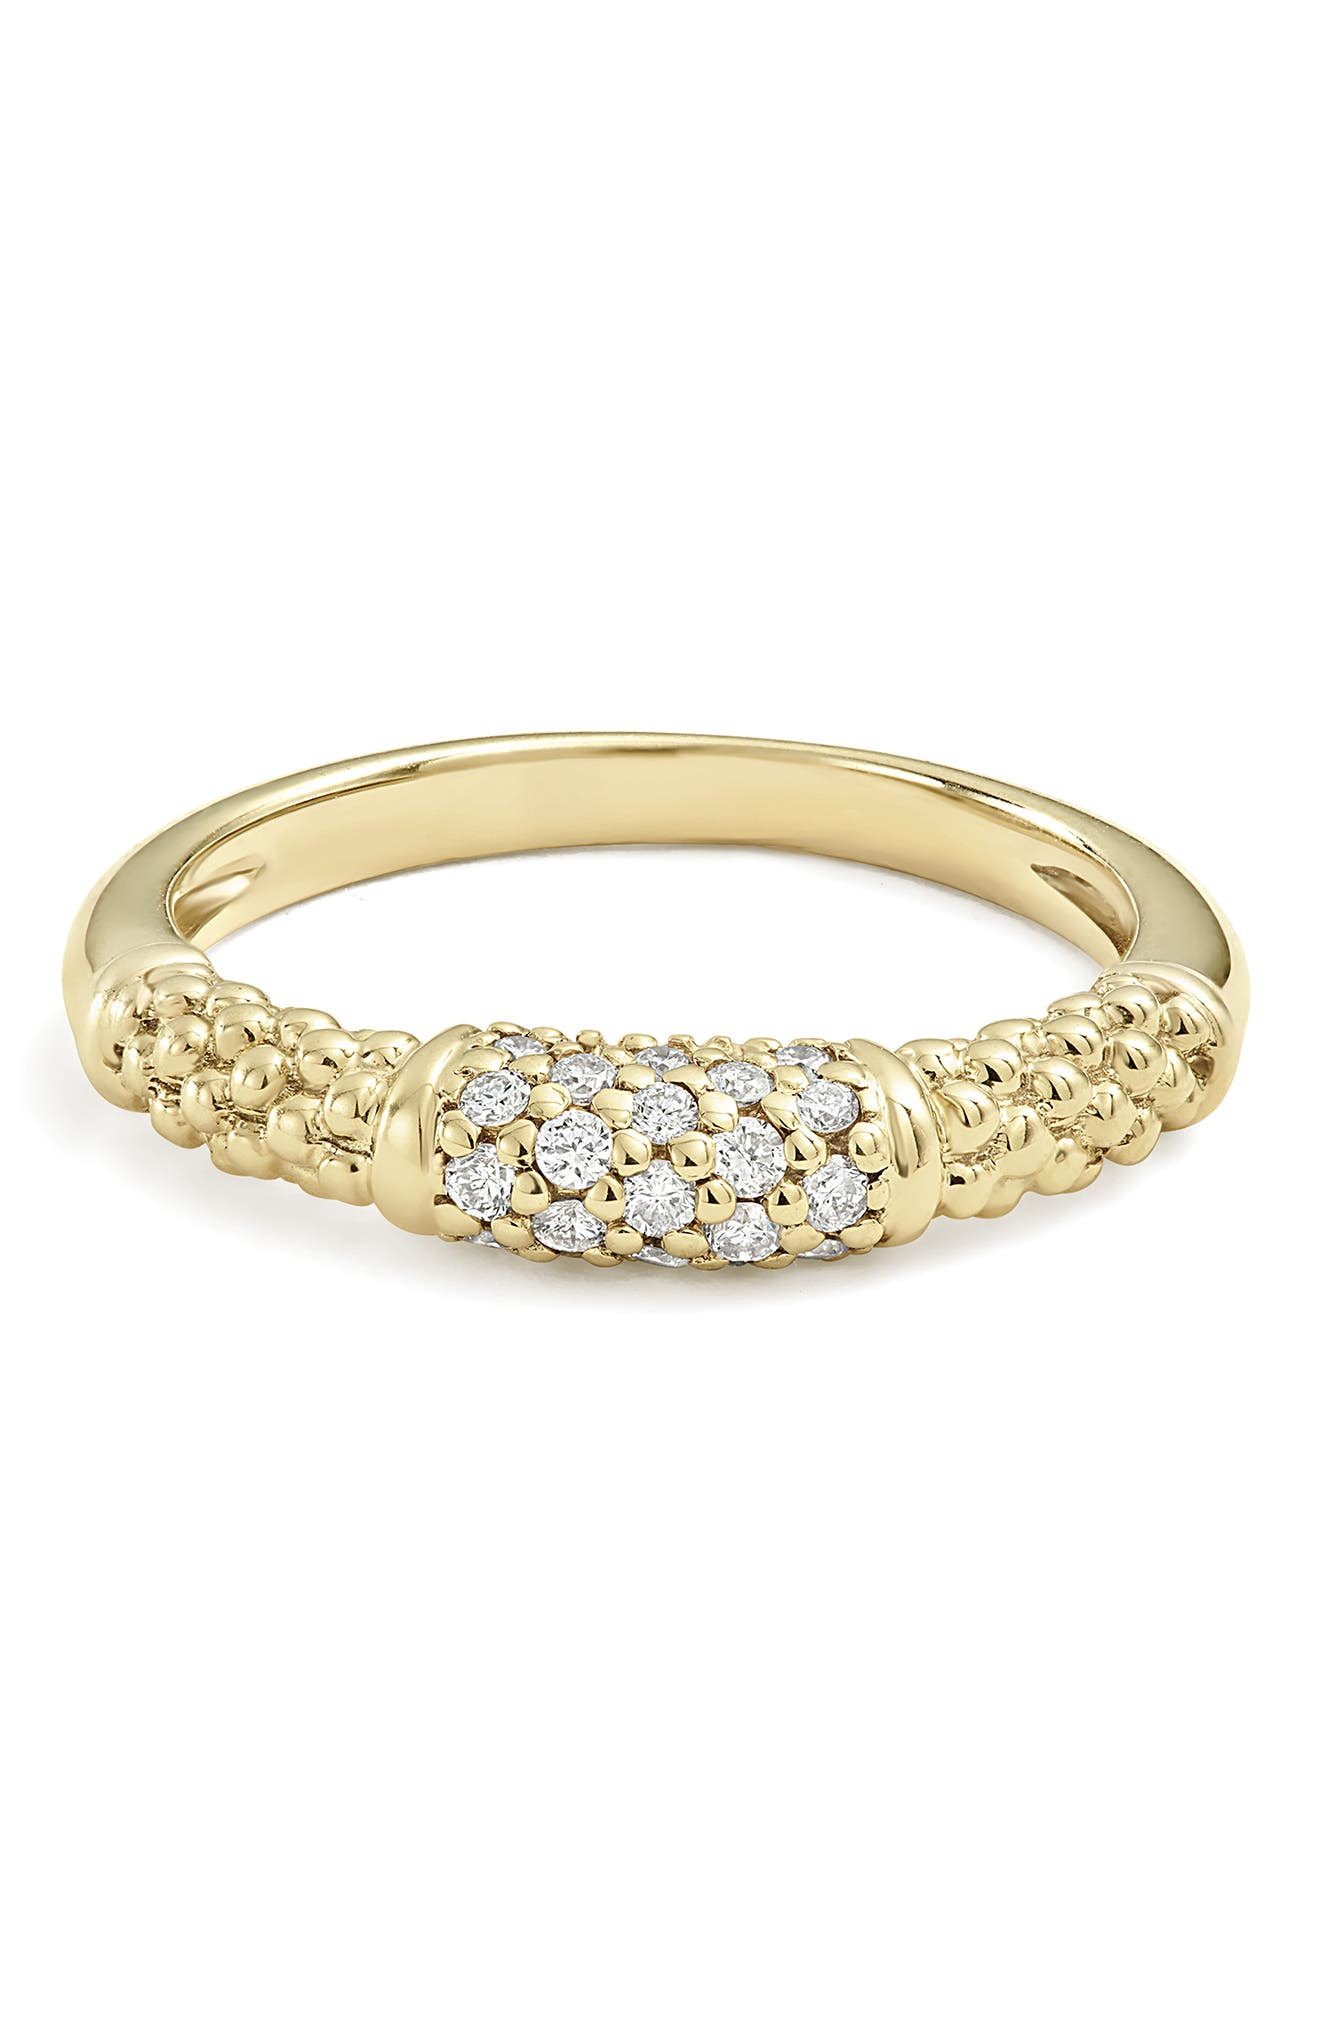 Caviar Diamond Ring,                             Alternate thumbnail 8, color,                             GOLD